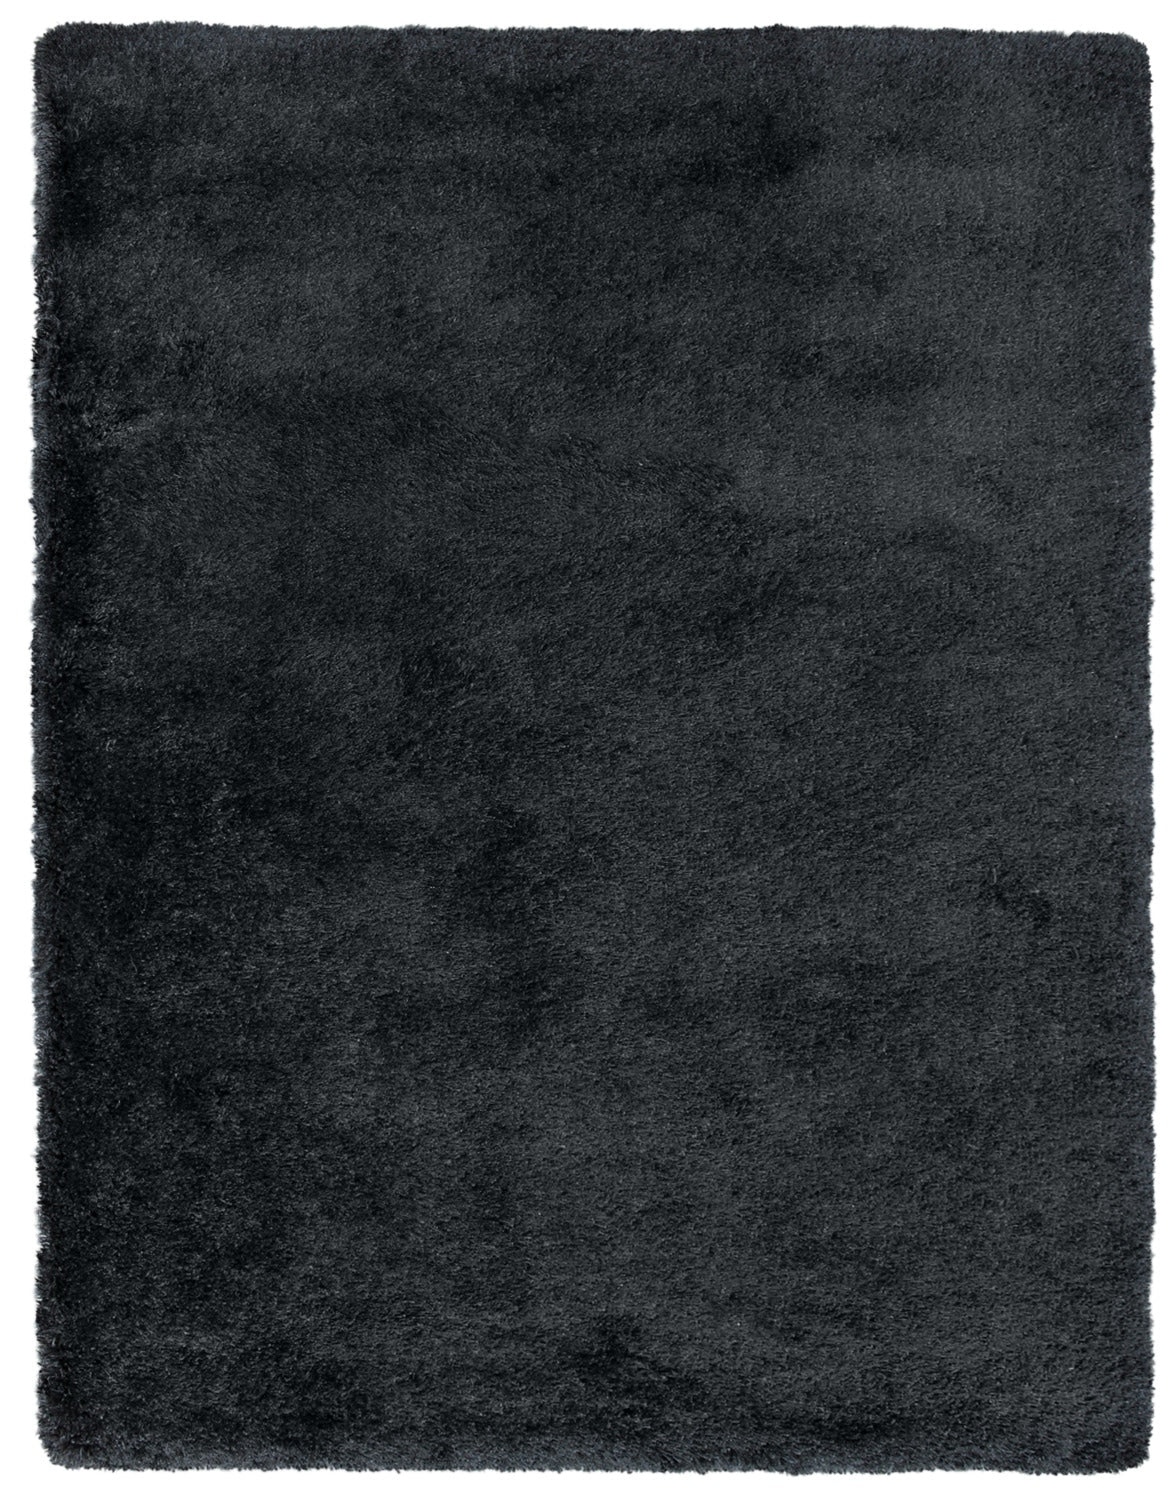 Luxe 5 3 X 7 5 Shag Area Rug Black The Brick